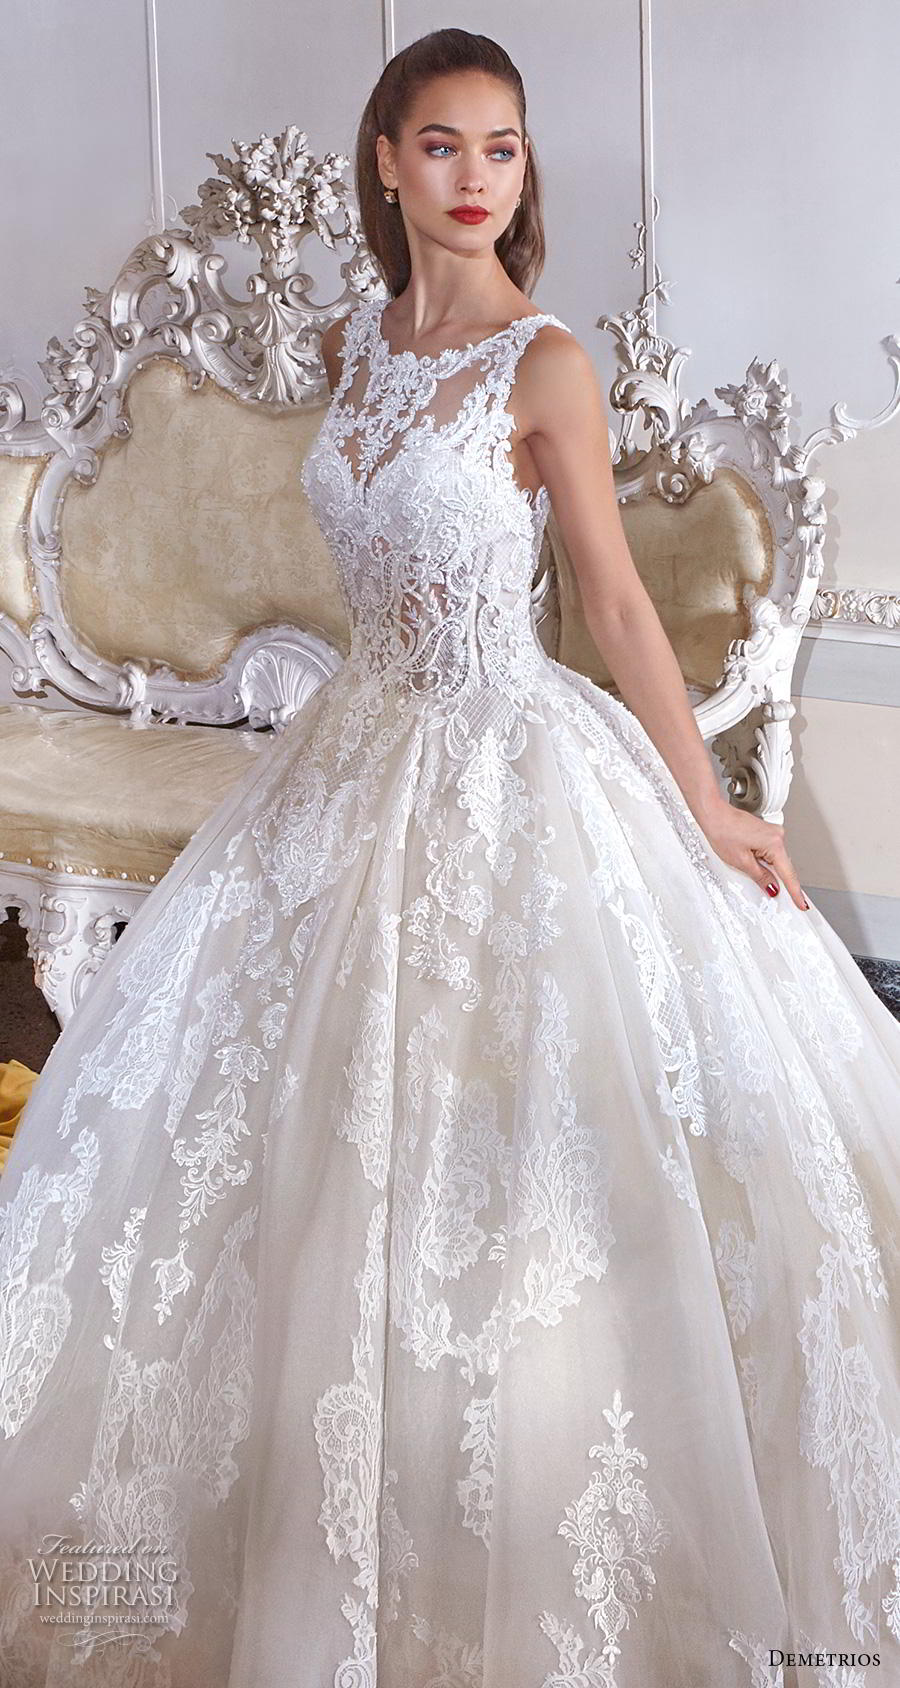 demetrios 2019 bridal sleeveless illusion bateau sweetheart neckline full embellishment princess ball gown a  line wedding dress lace back chapel train (7) zv